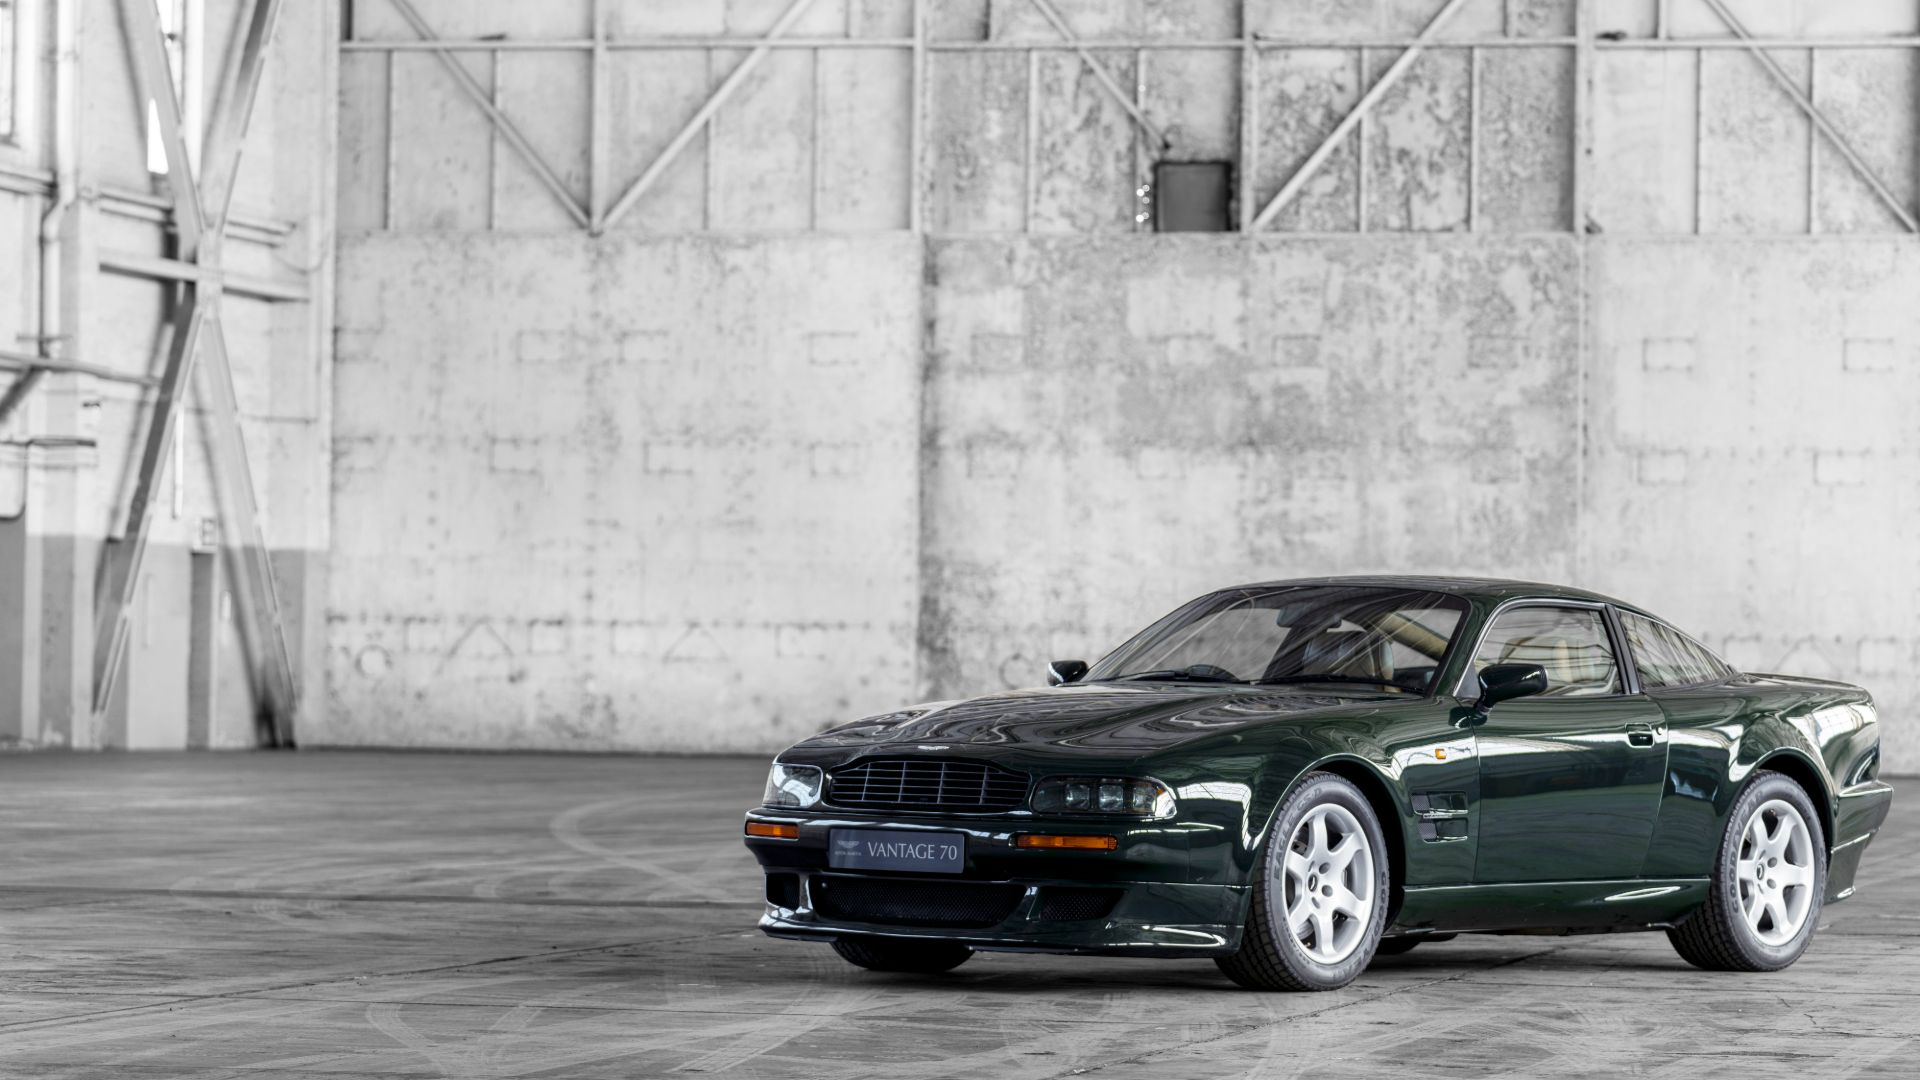 Supercharged Vantage – the 'brute in a suit'